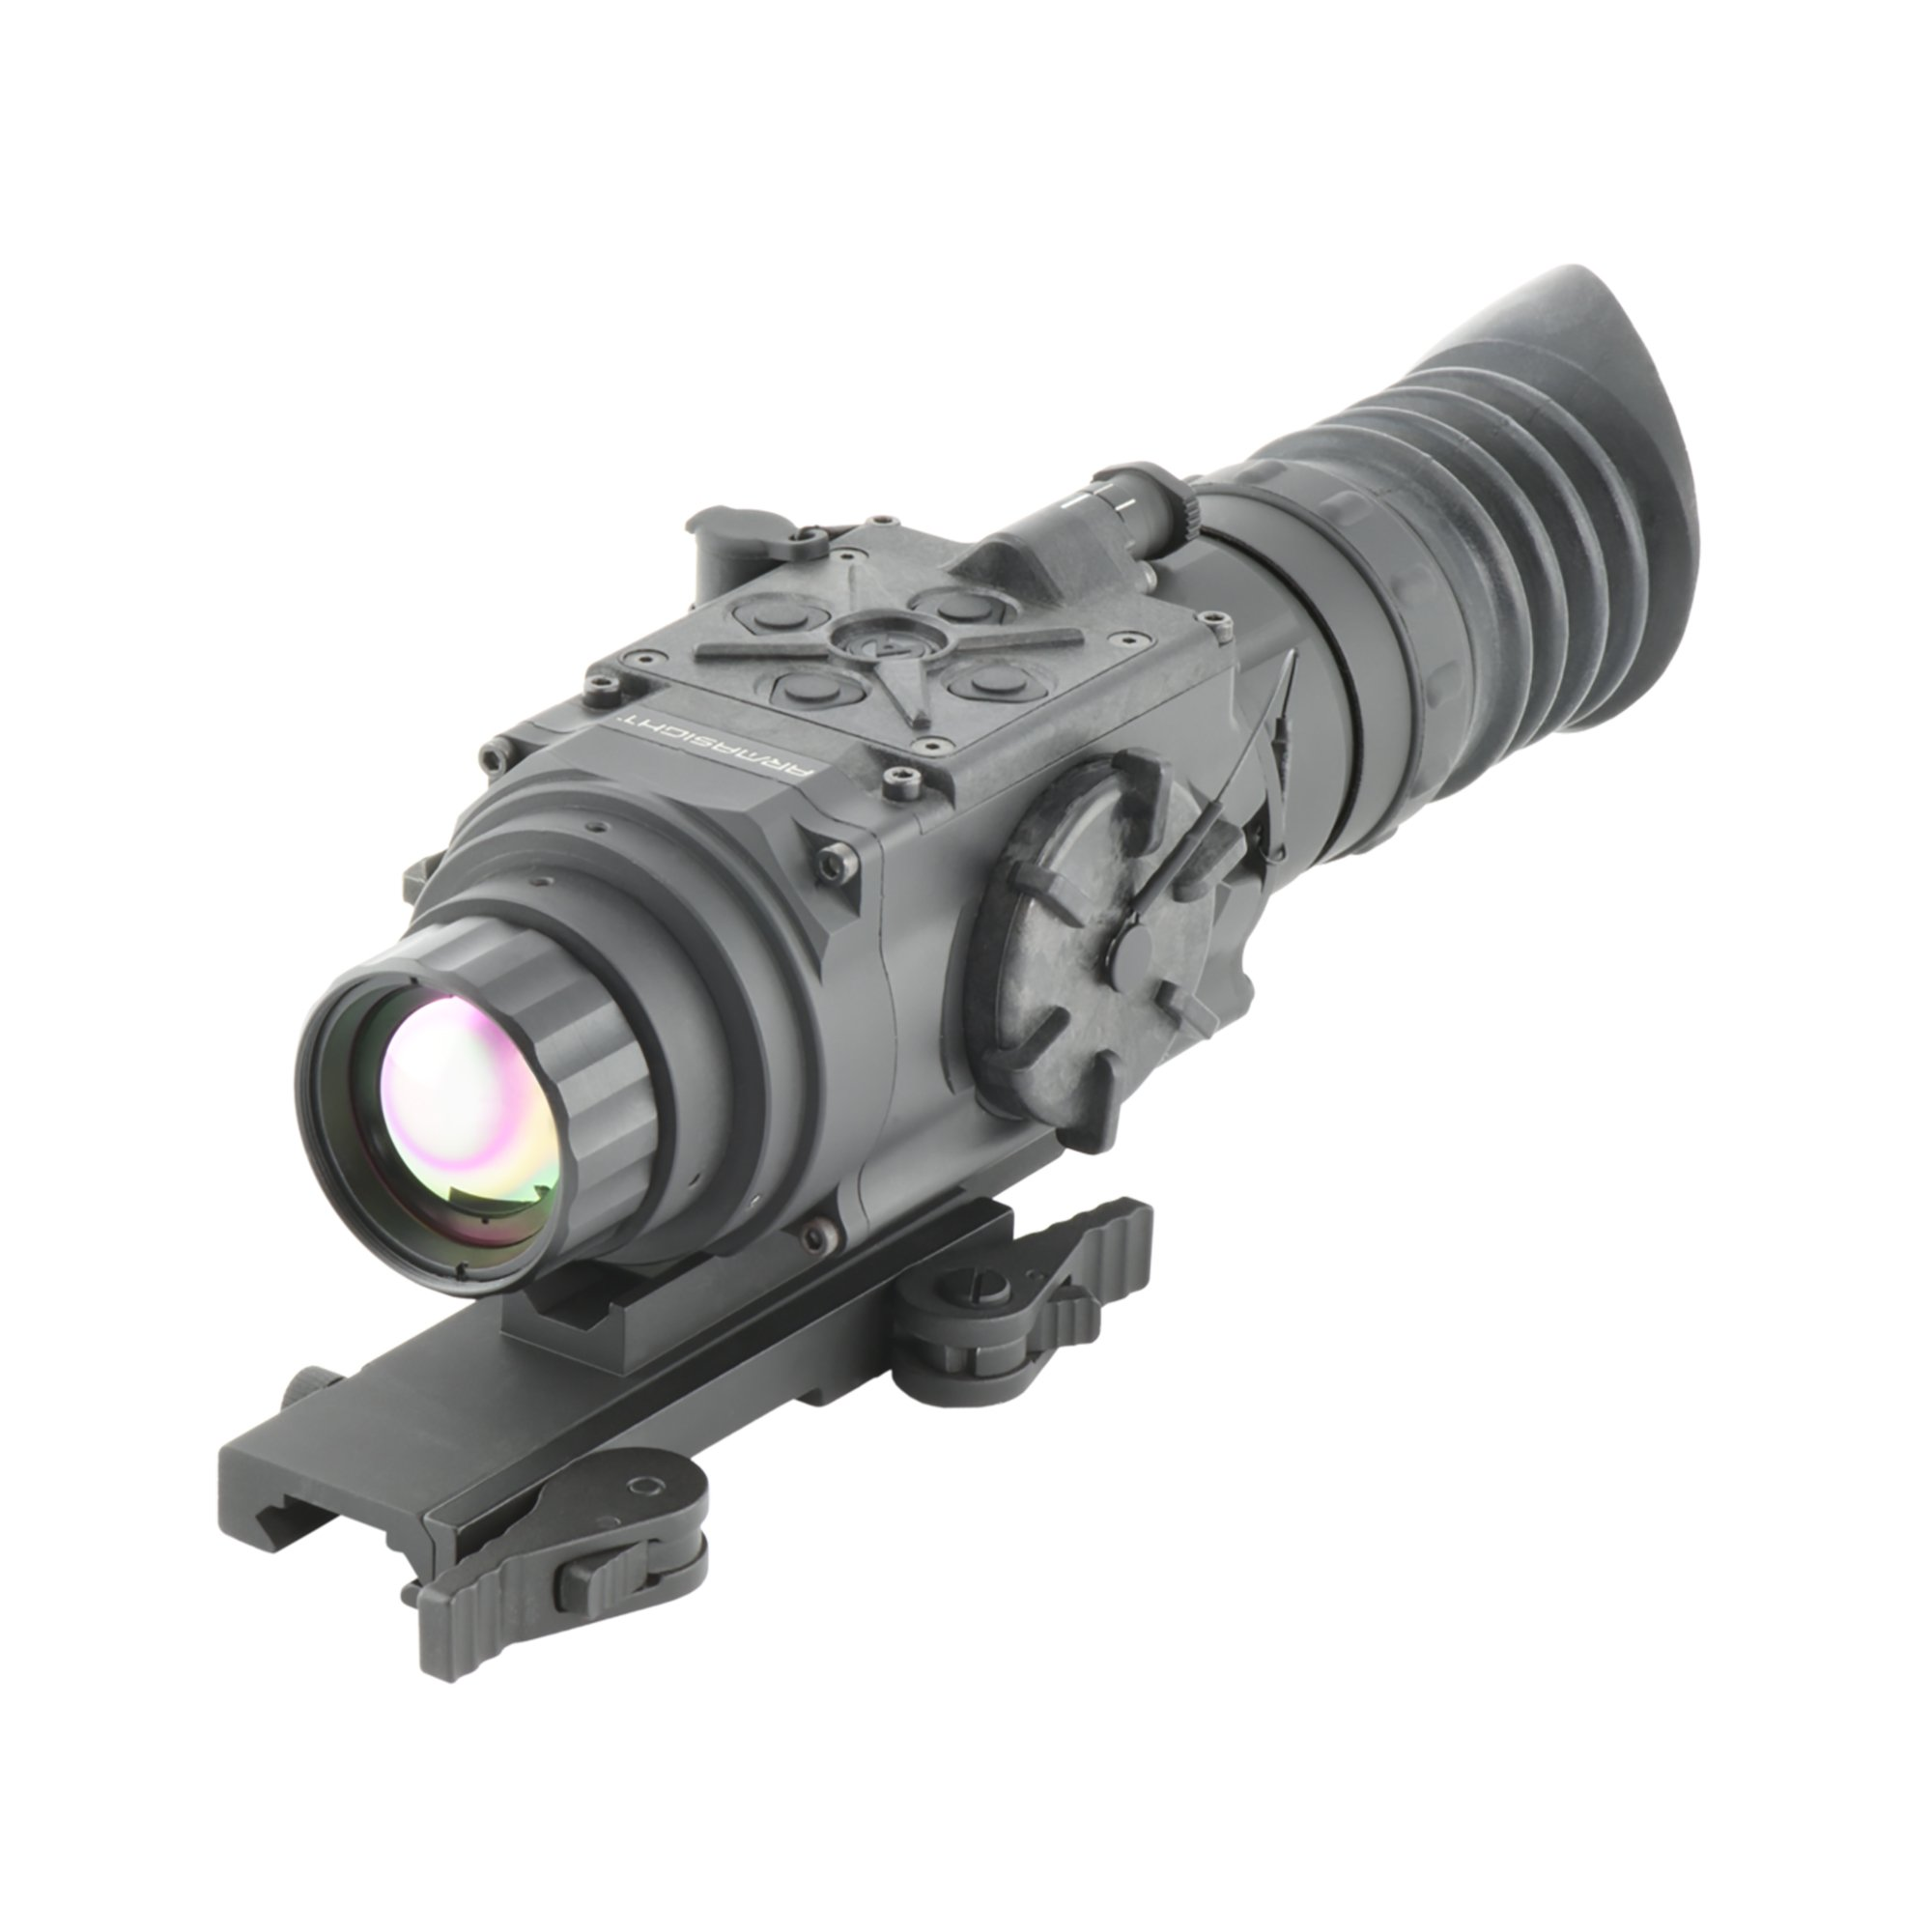 Armasight by FLIR Predator 336 2-8x25mm Thermal Imaging Rifle Scope with Tau 2 336x256 17 micron 30Hz Core by Armasight